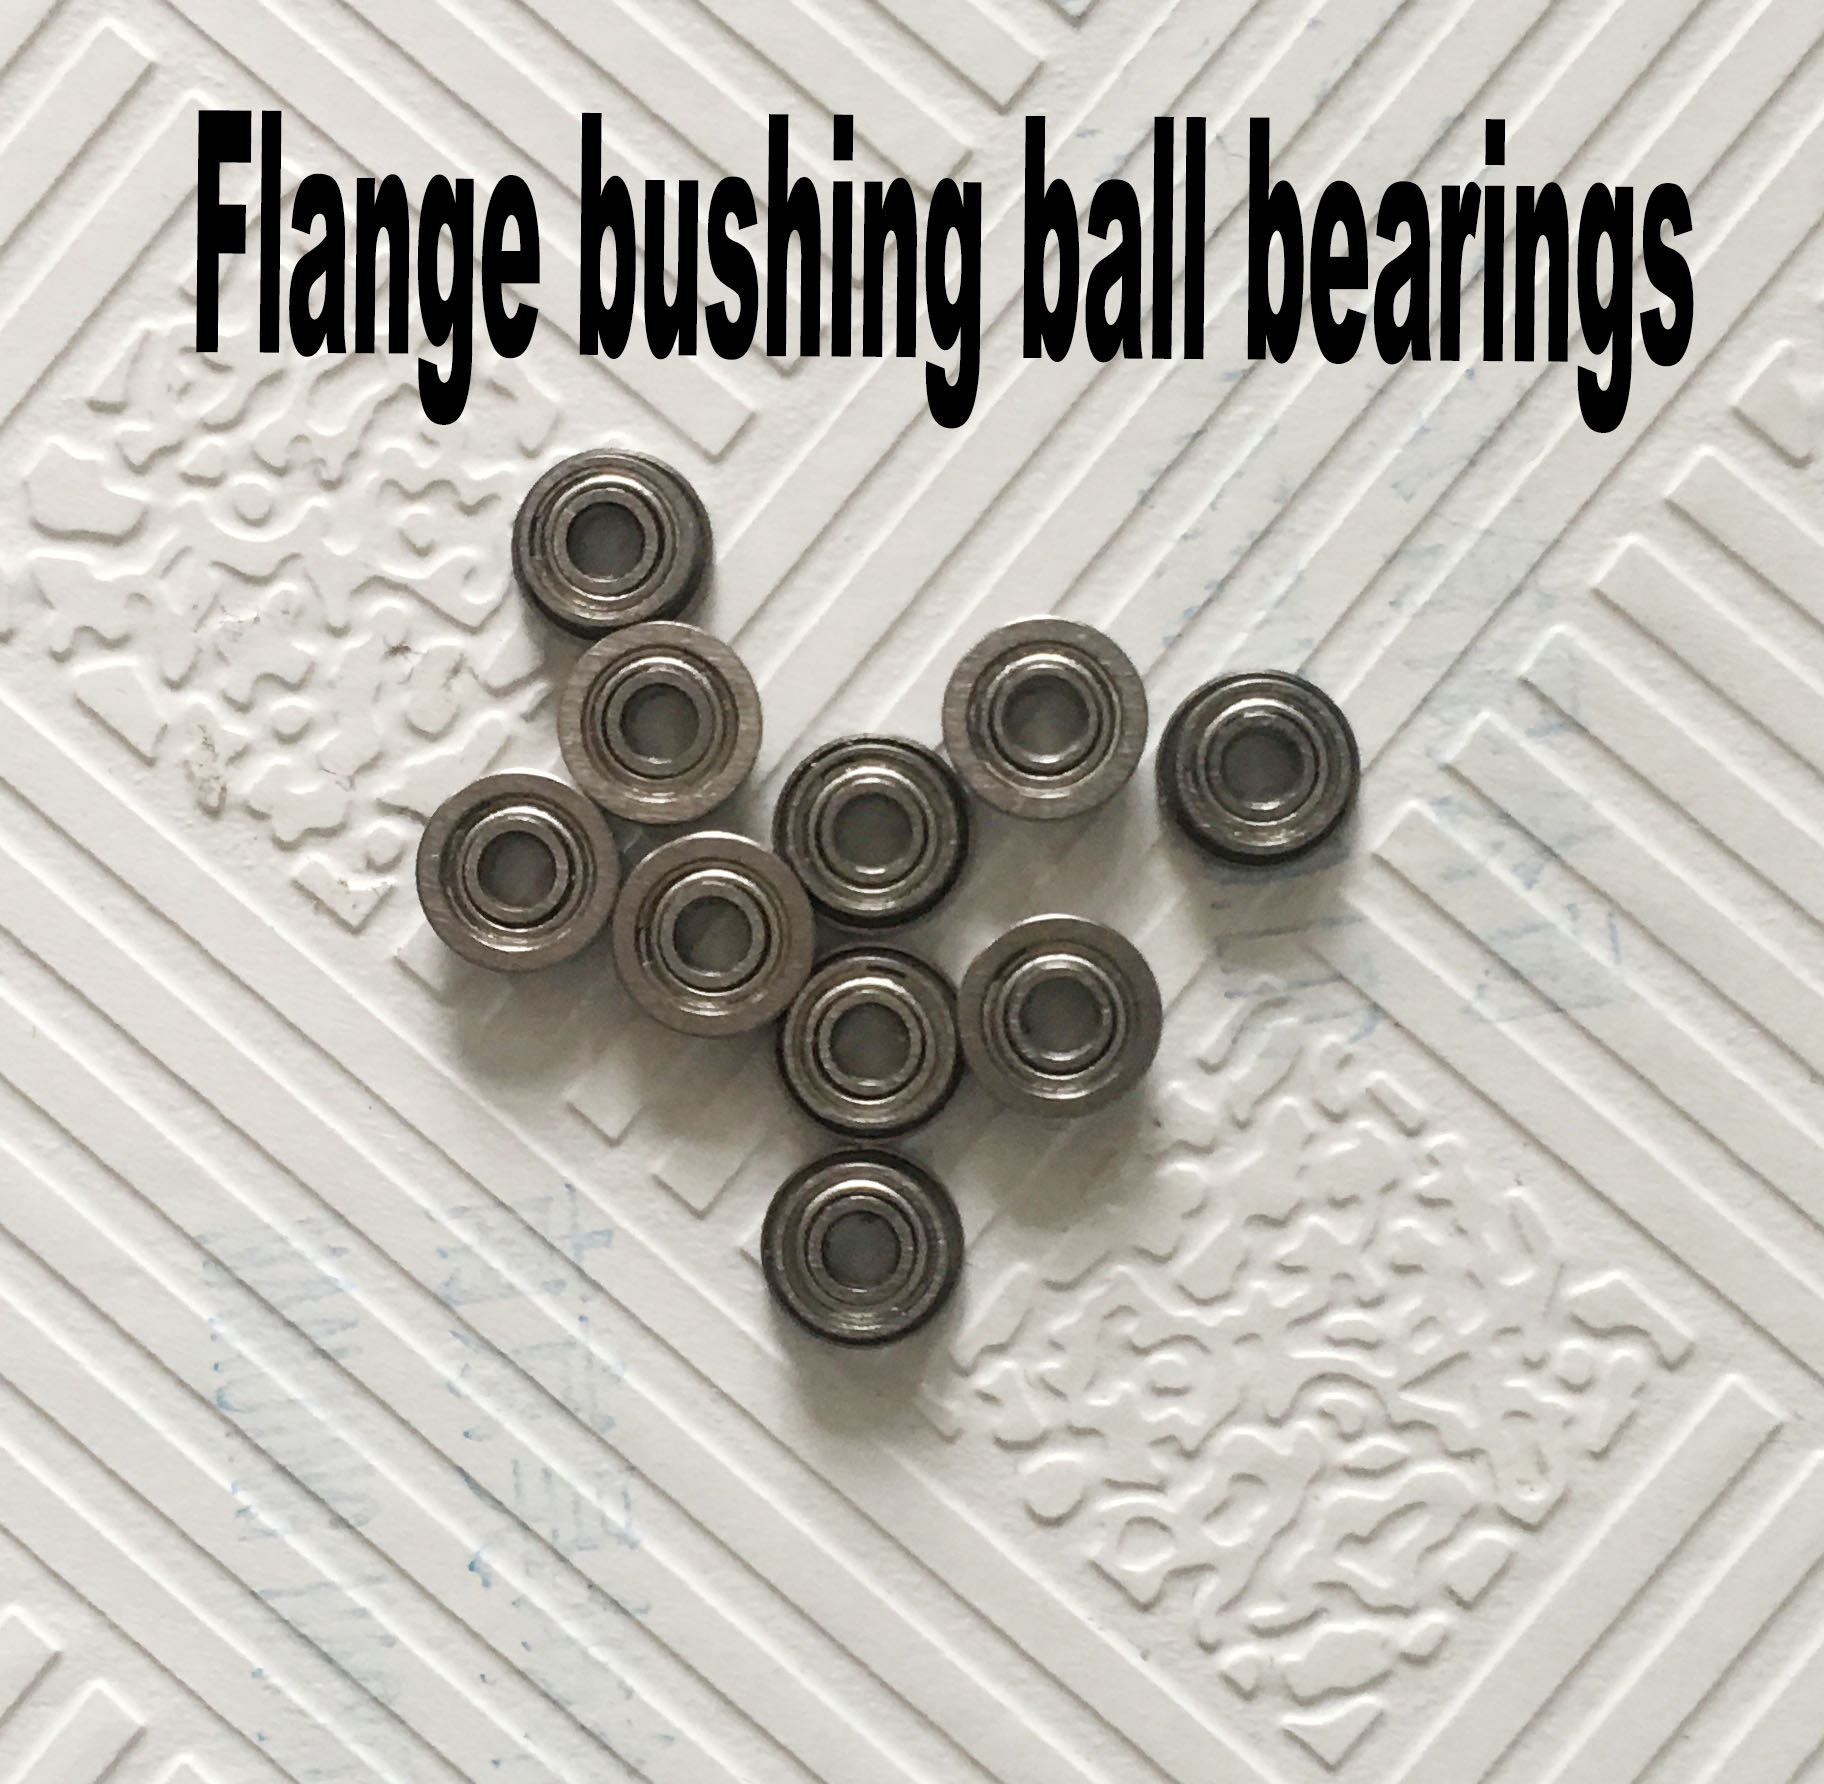 Free Shipping 10 PCS SMF52ZZ Flanged Bearings 2x5x2.5 mm Stainless Steel Flange Ball Bearings free shipping 10 pcs mf74zz flanged bearings 4x7x2 5 mm flange ball bearings lf 740zz